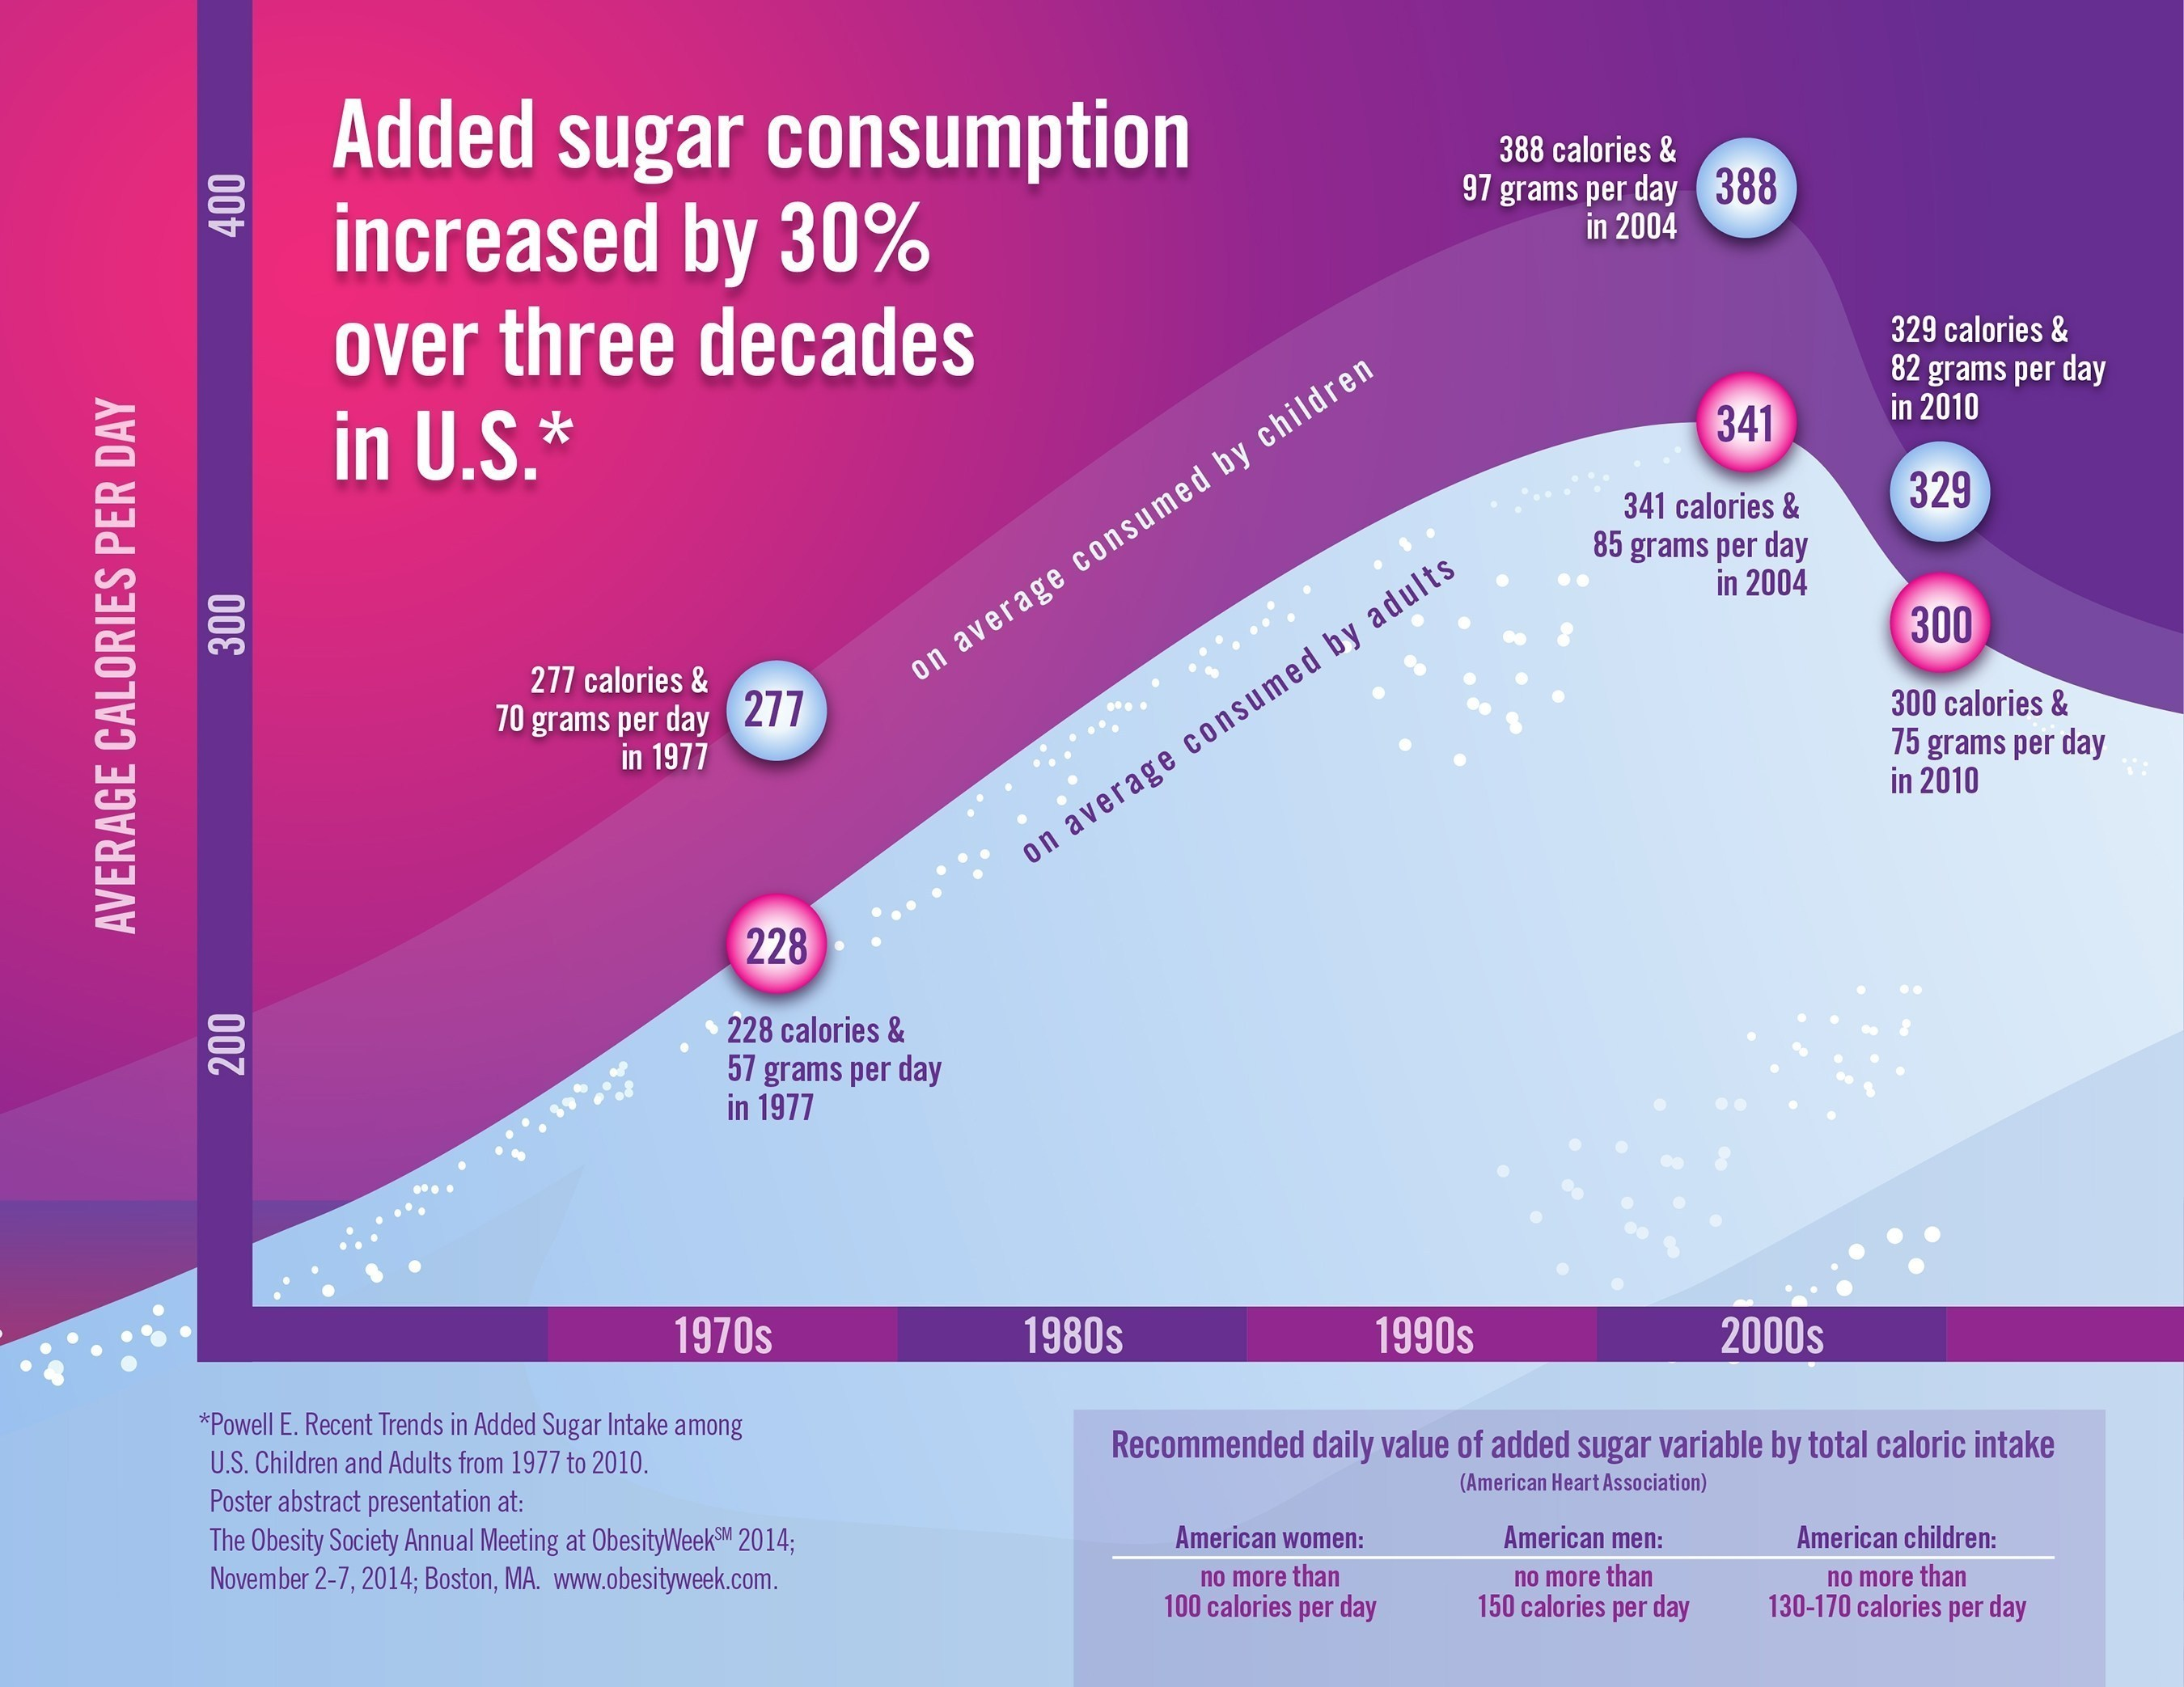 Added Sugar Consumption Increased by 30% Over Three Decades in U.S.